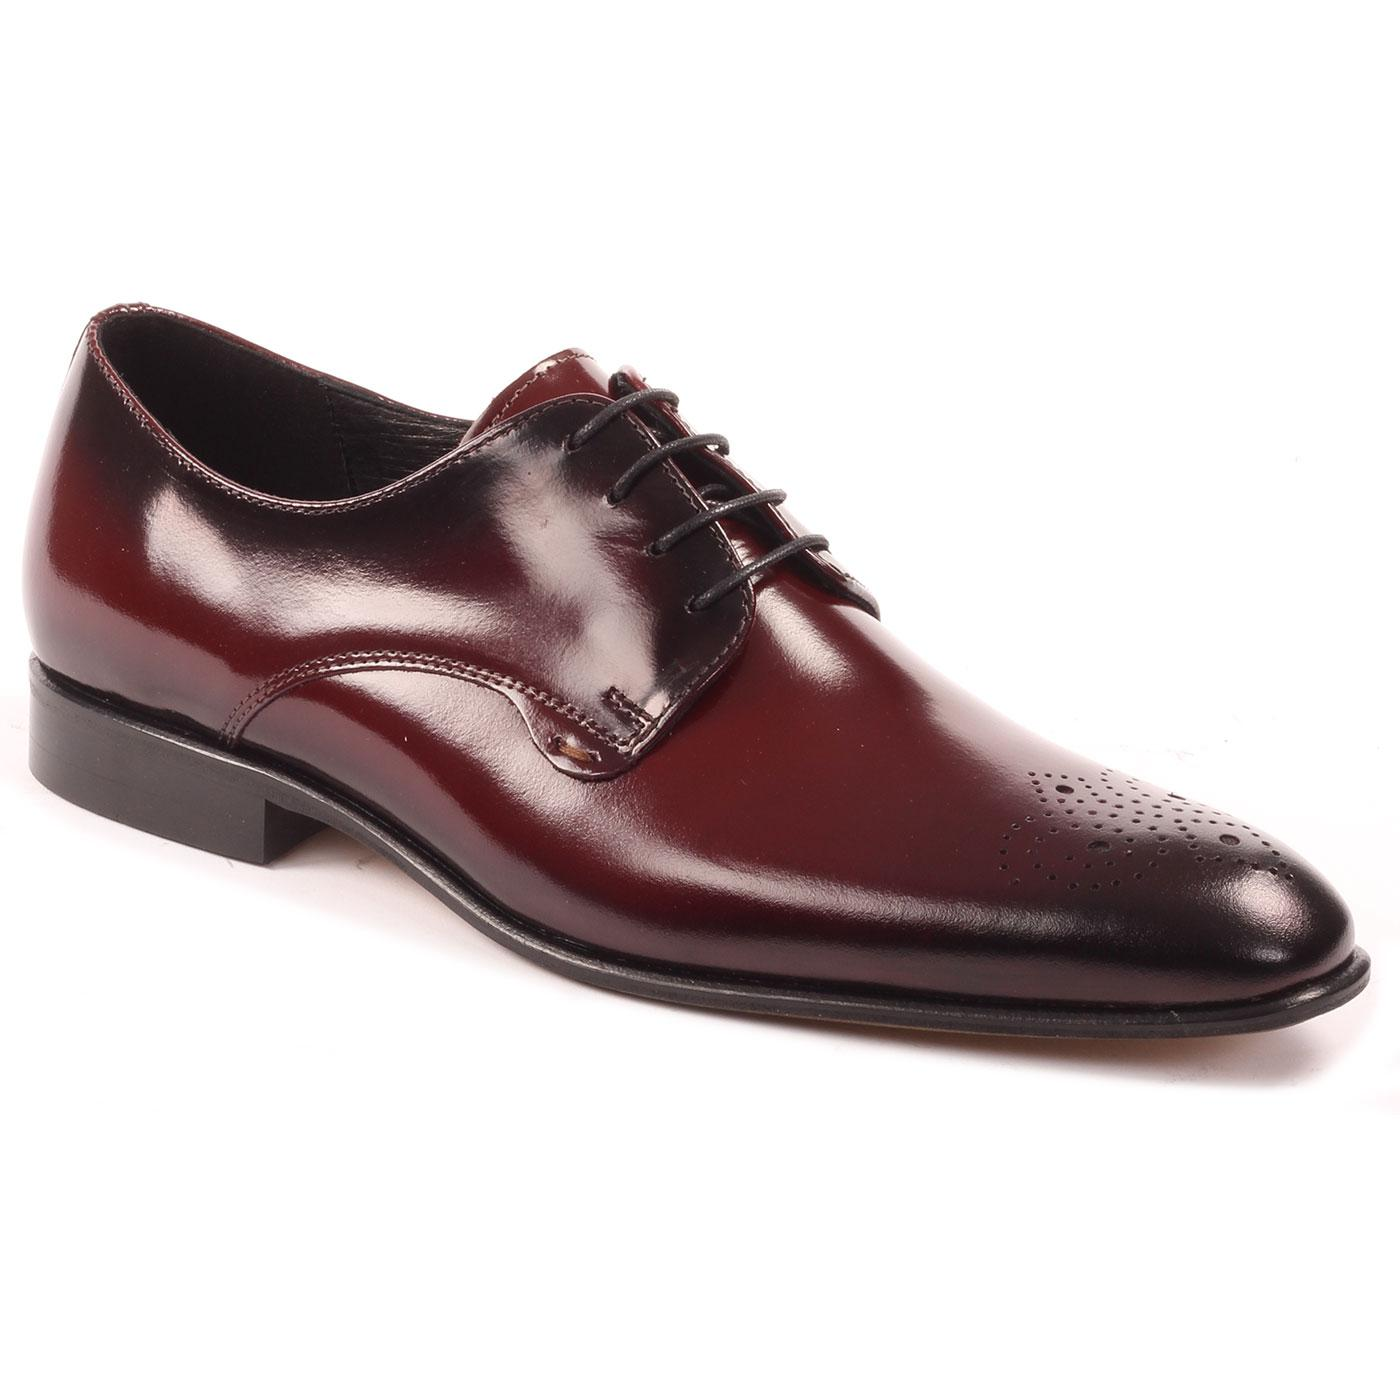 LACUZZO Mod High Shine Leather Brogues (Claret)